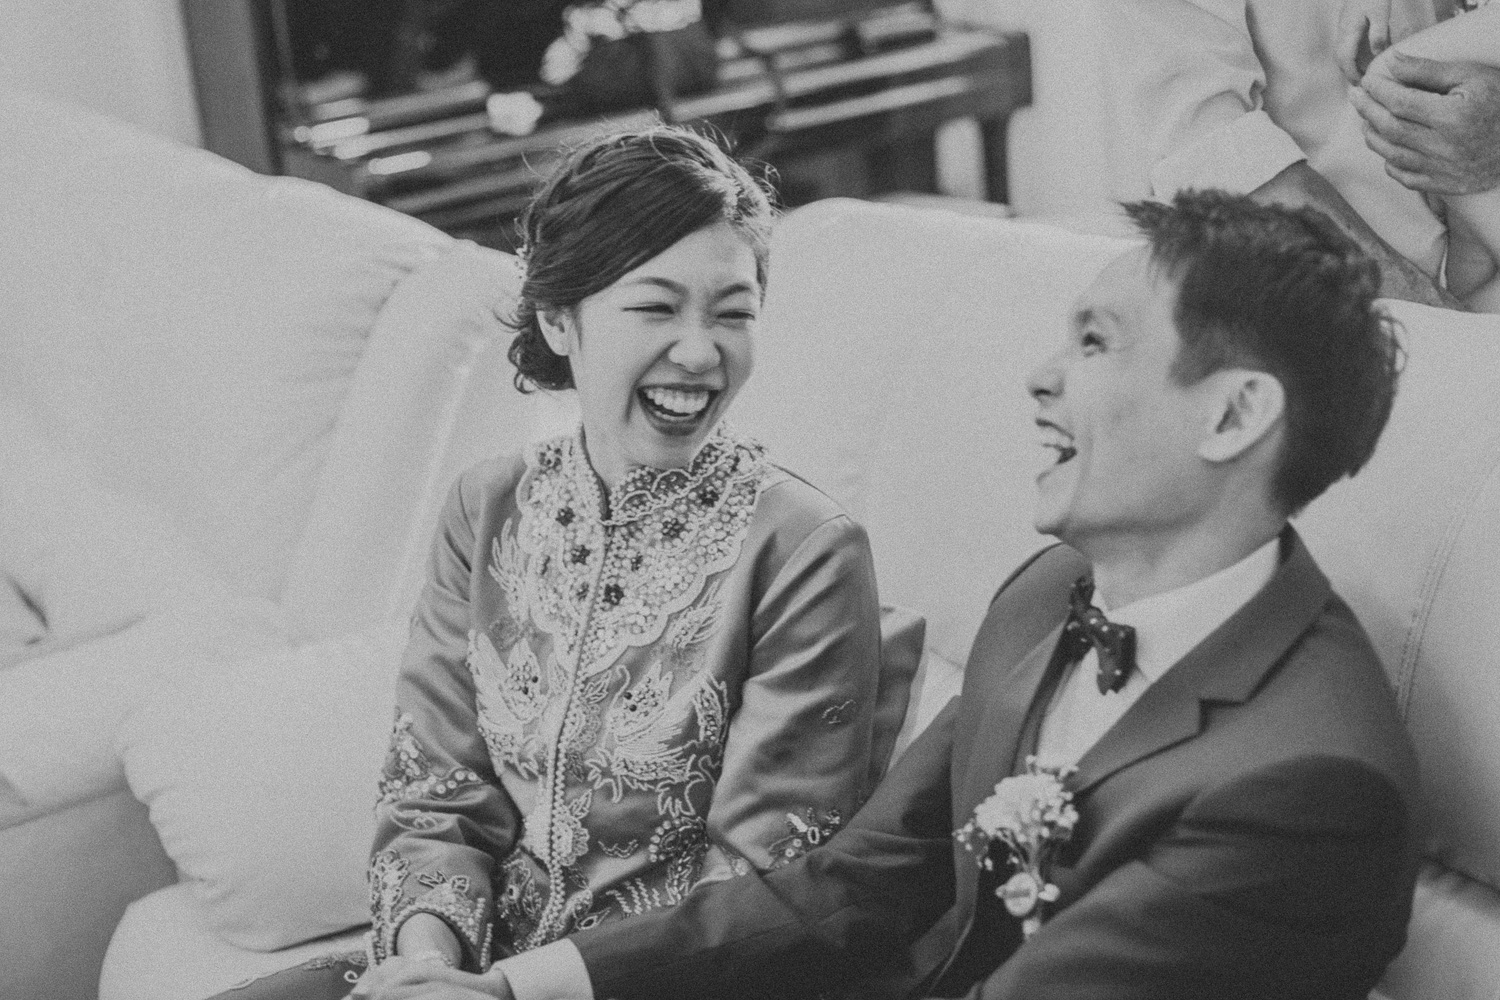 bittersweet photography Singapore wedding photographer jonathan 74